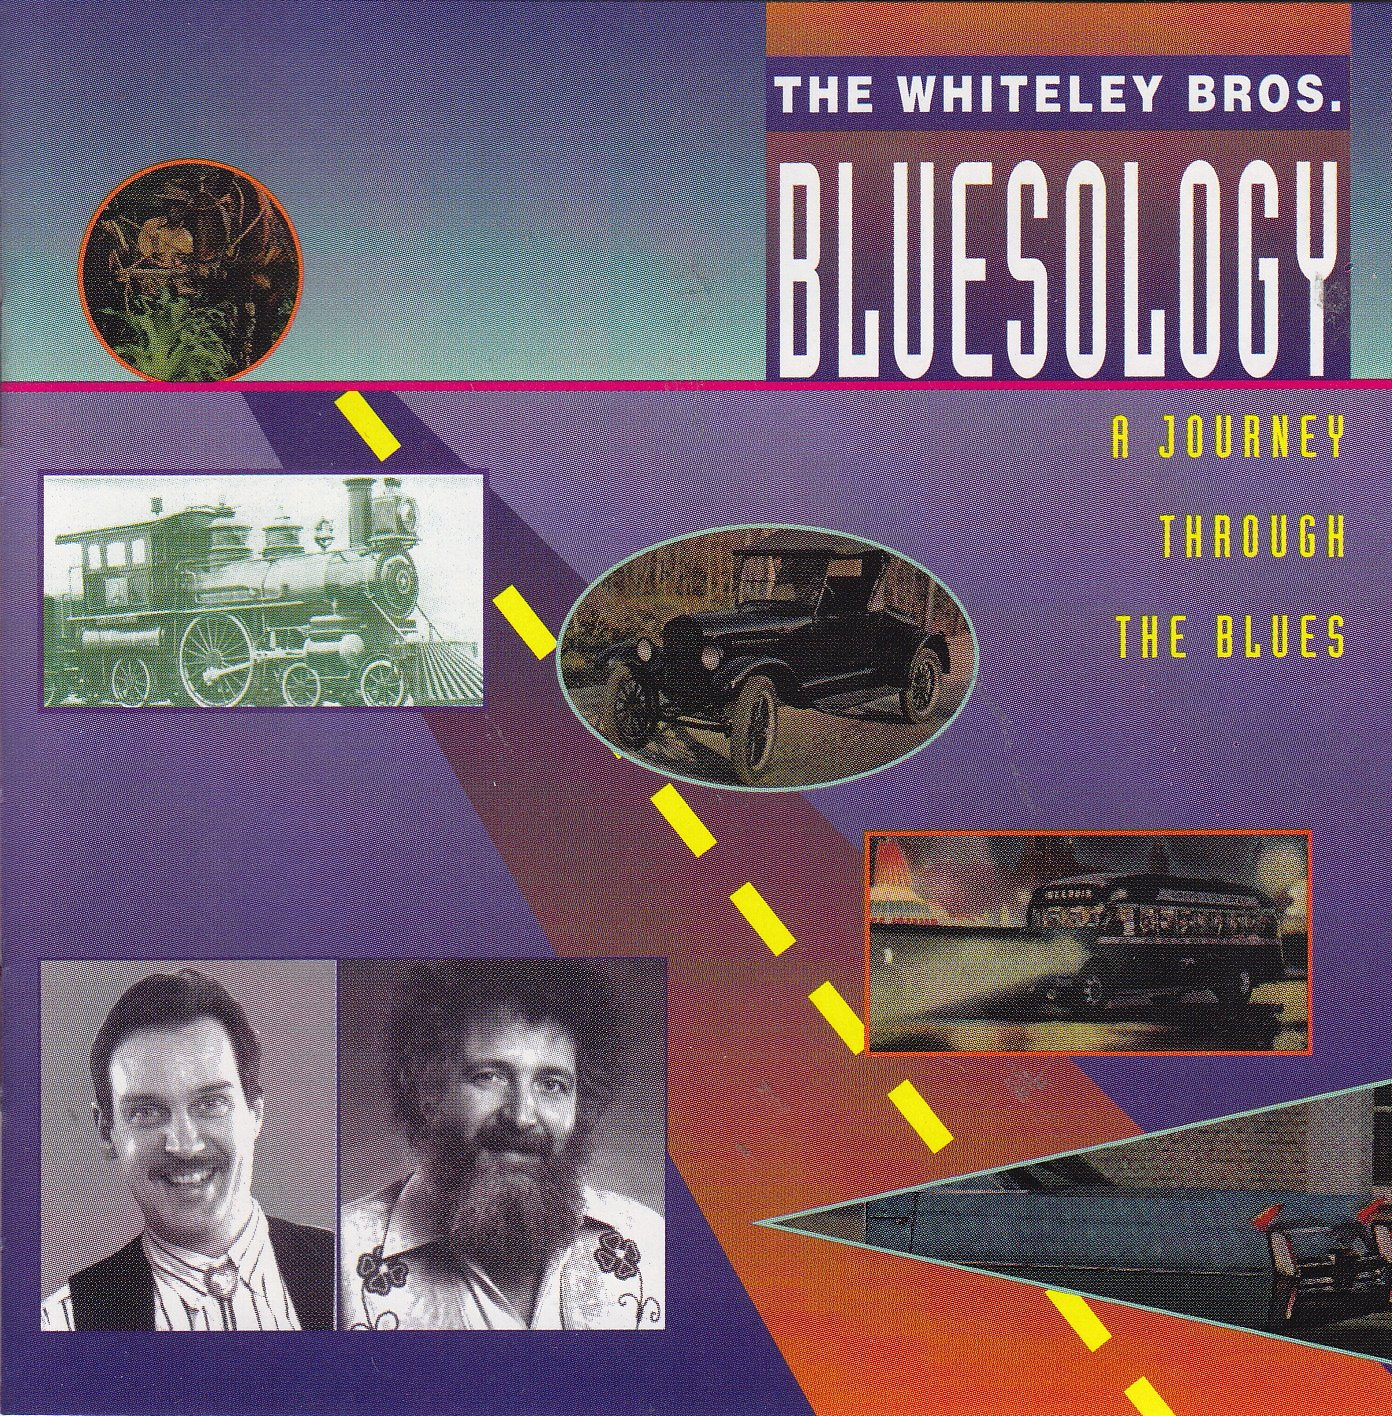 Bluesology: A Journey Through the Blues by Pyramid Records